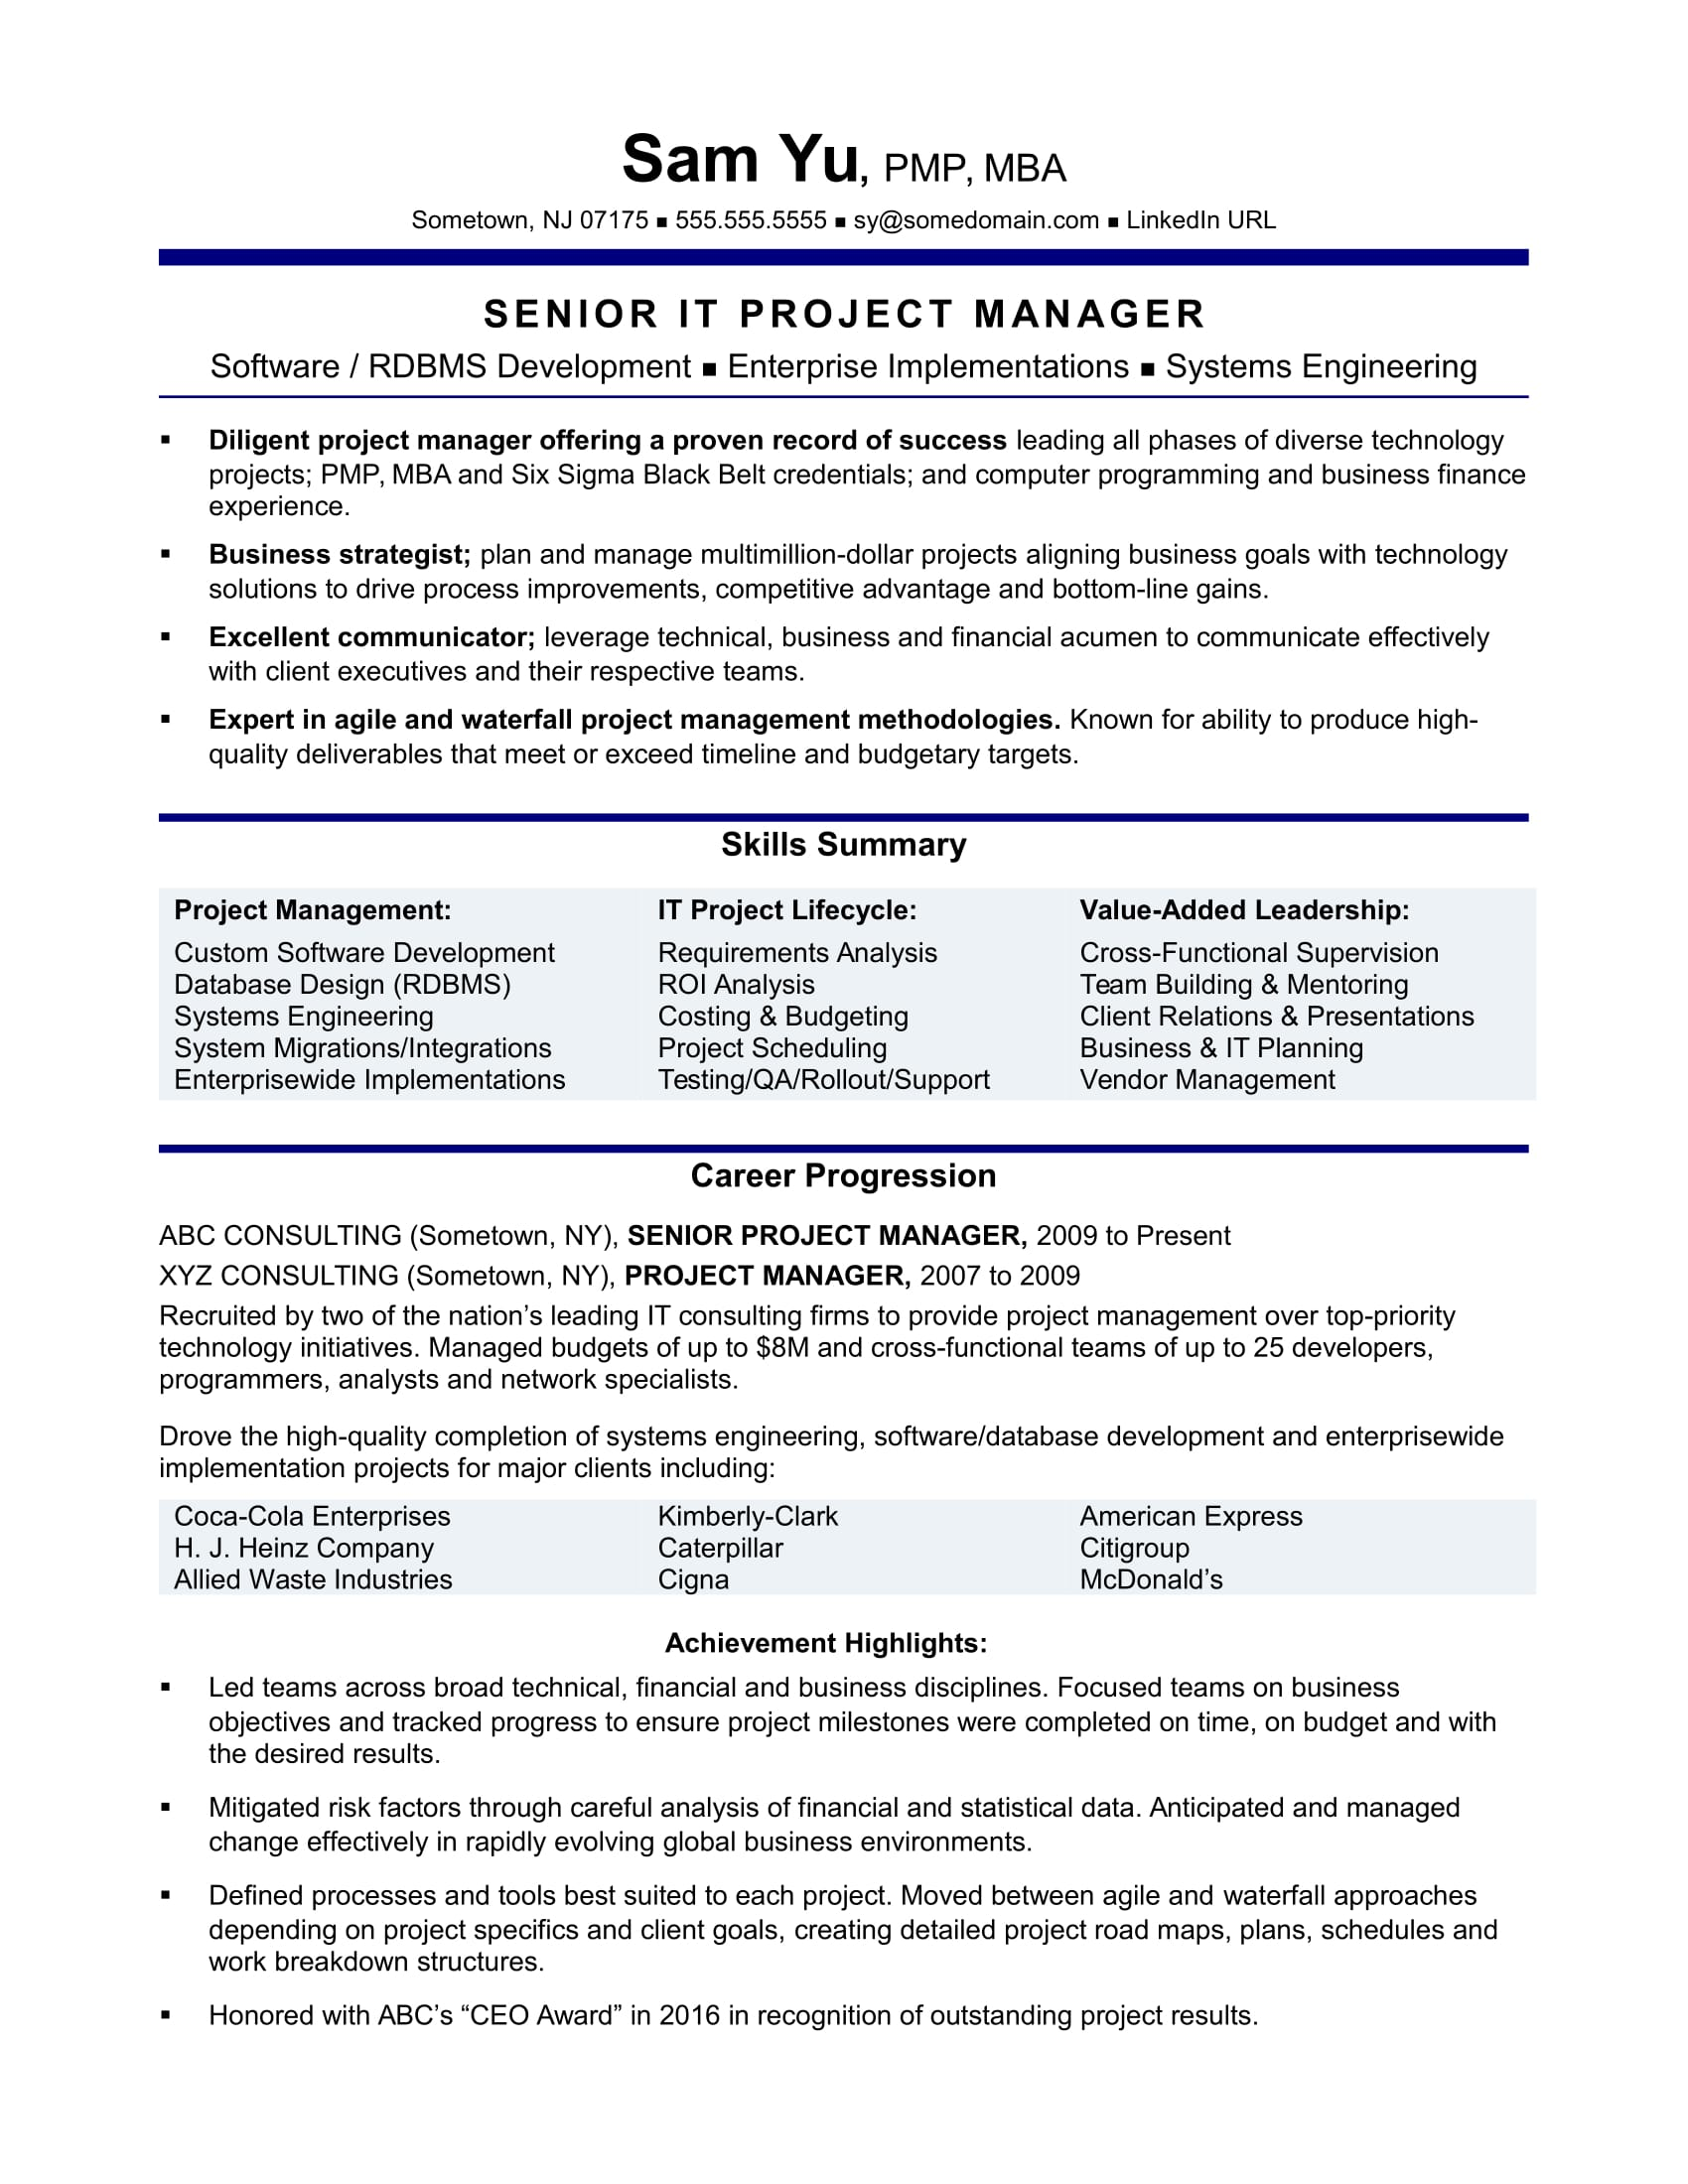 senior project manager resume samples - Boat.jeremyeaton.co